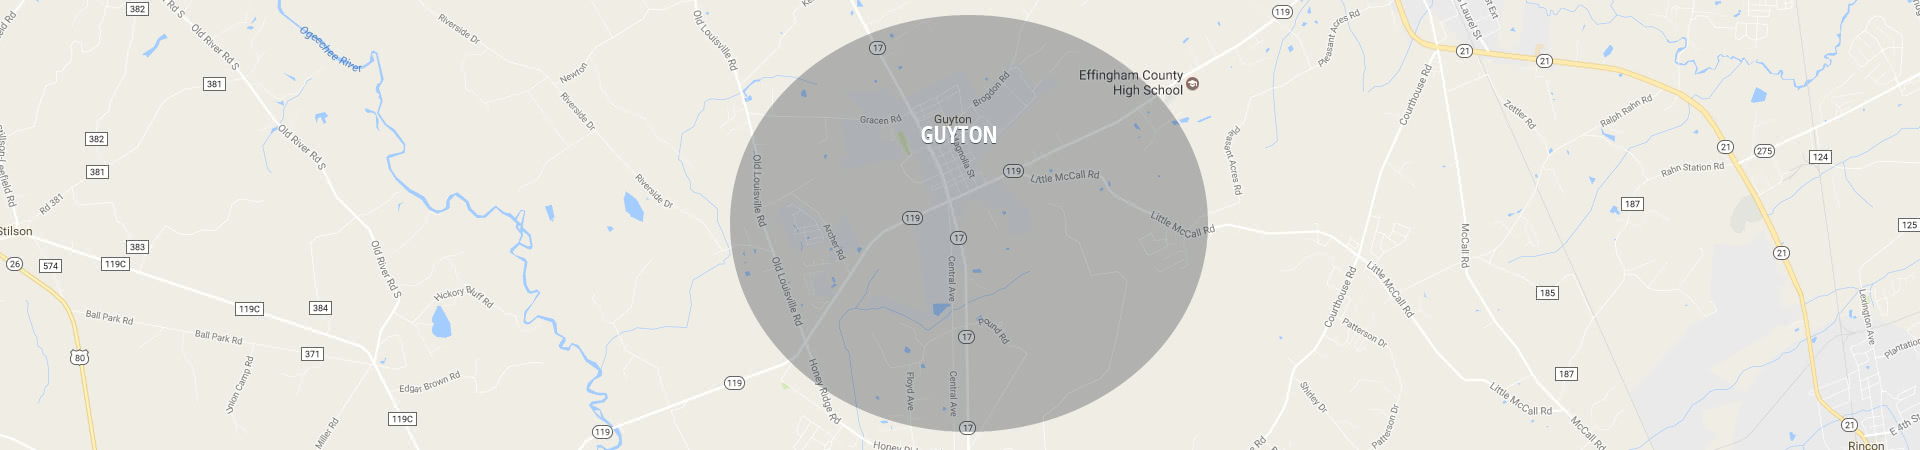 South Shore Guyton Service area